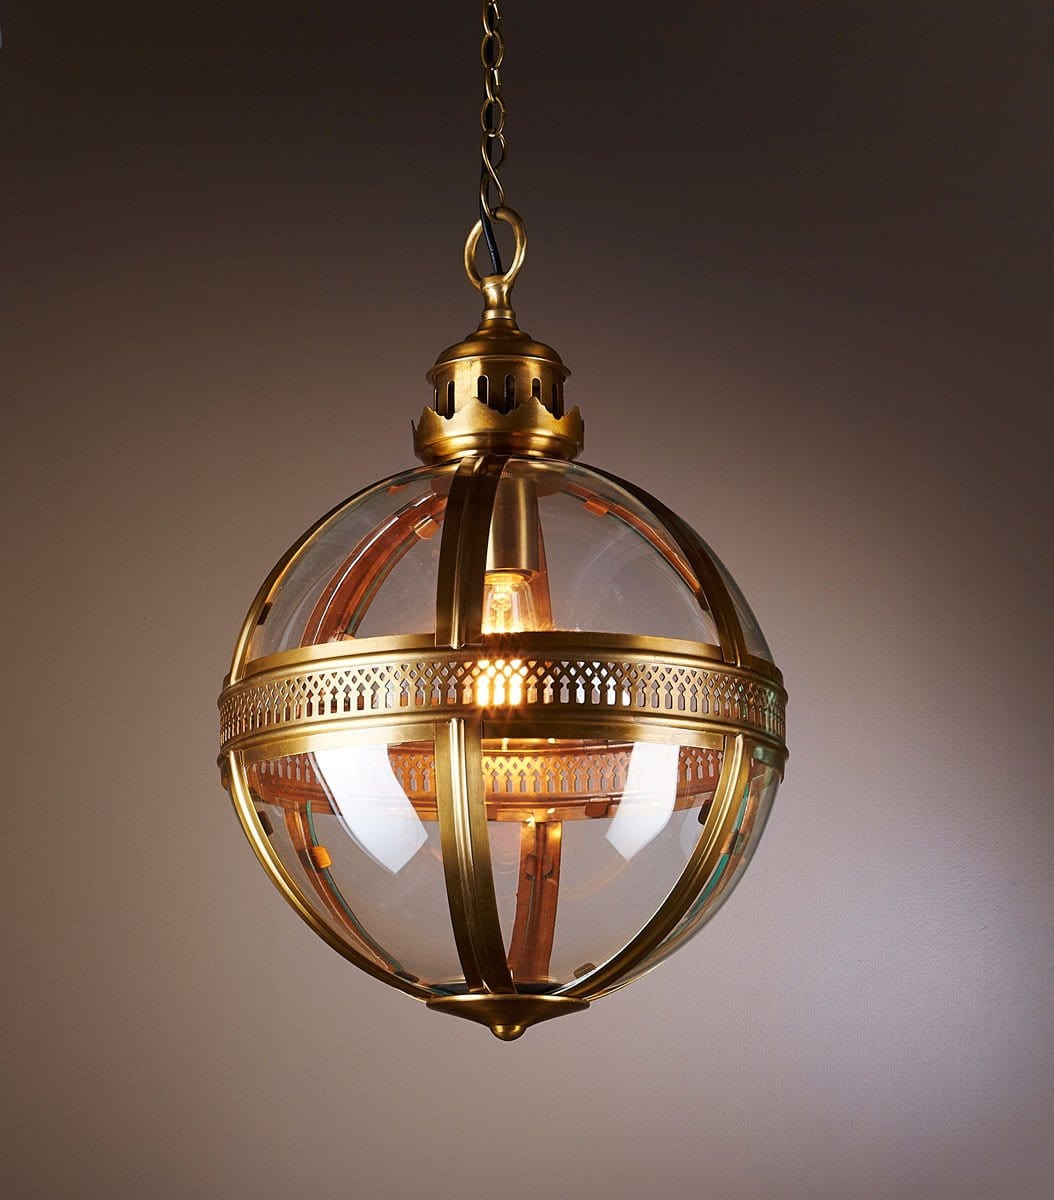 Pendant Light Saxon Pendant Lamp Large Antique Brass